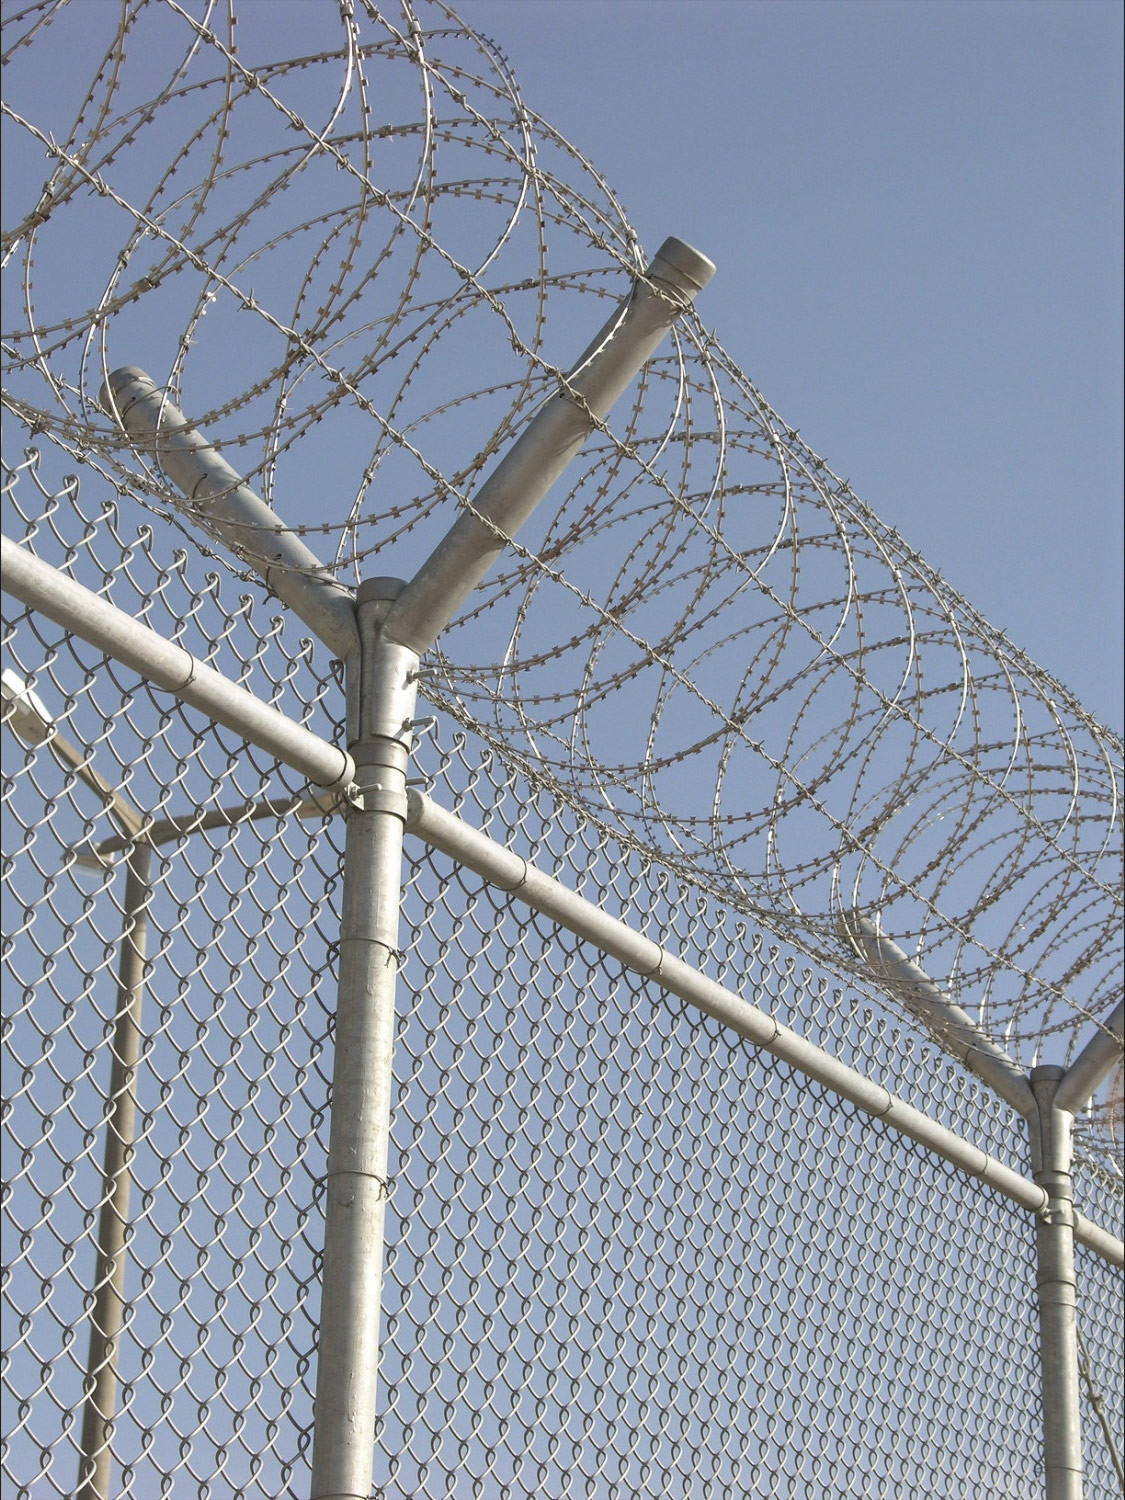 ASTM Chain Link Wire Fences